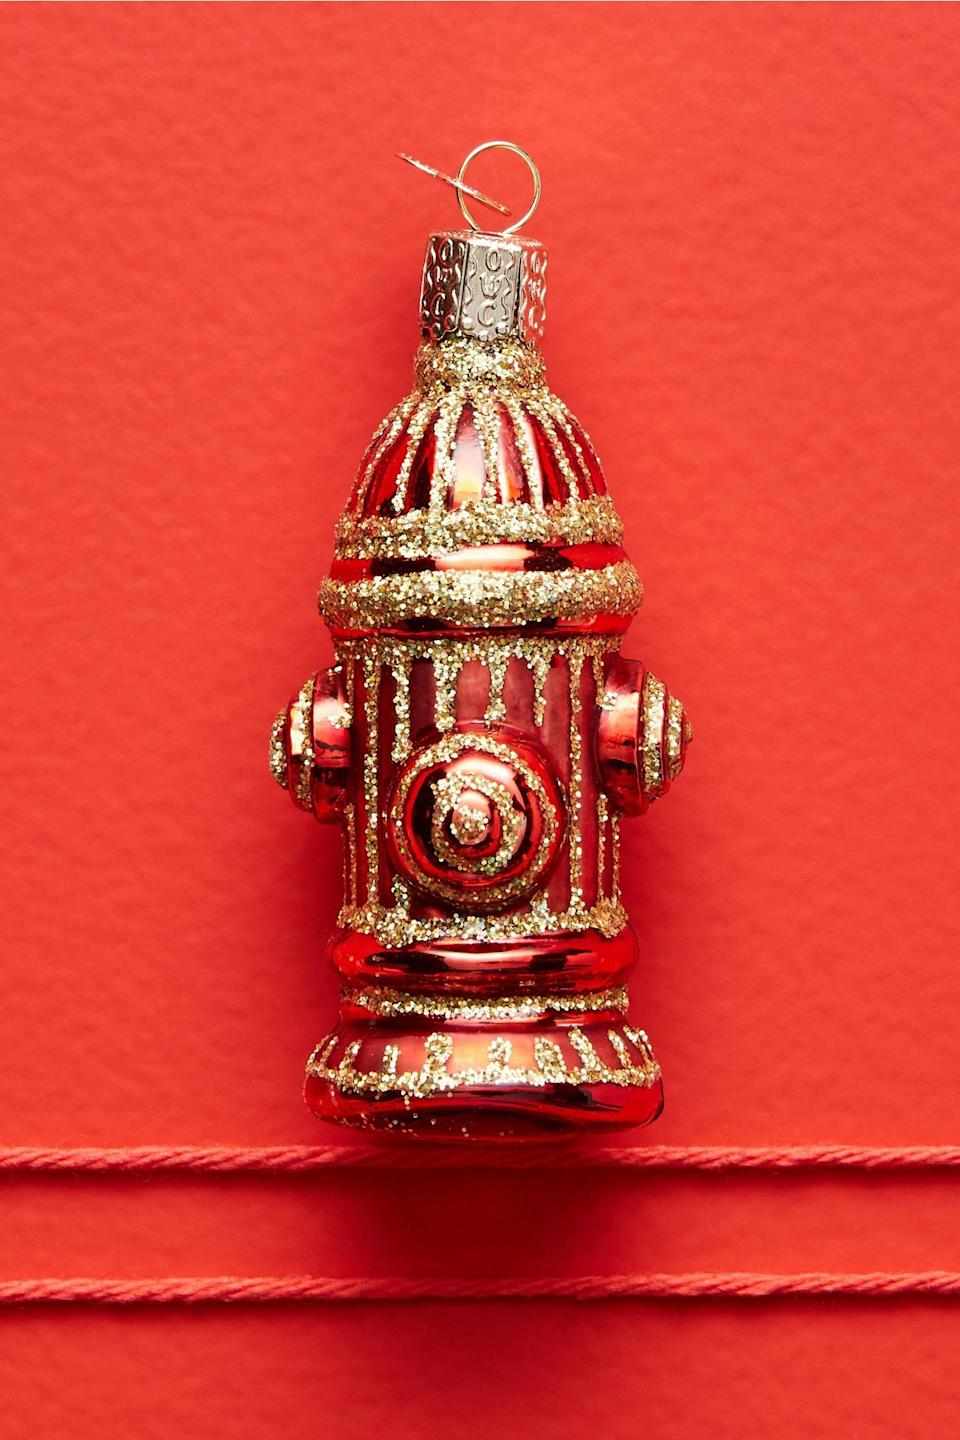 """<p>The <a href=""""https://www.popsugar.com/buy/Fire-Hydrant-Ornament-490568?p_name=Fire%20Hydrant%20Ornament&retailer=anthropologie.com&pid=490568&price=12&evar1=casa%3Aus&evar9=46615300&evar98=https%3A%2F%2Fwww.popsugar.com%2Fhome%2Fphoto-gallery%2F46615300%2Fimage%2F46615439%2FFire-Hydrant-Ornament&list1=shopping%2Canthropologie%2Choliday%2Cchristmas%2Cchristmas%20decorations%2Choliday%20decor%2Chome%20shopping&prop13=mobile&pdata=1"""" rel=""""nofollow noopener"""" class=""""link rapid-noclick-resp"""" target=""""_blank"""" data-ylk=""""slk:Fire Hydrant Ornament"""">Fire Hydrant Ornament</a> ($12) makes a great gift for firefighters. </p>"""